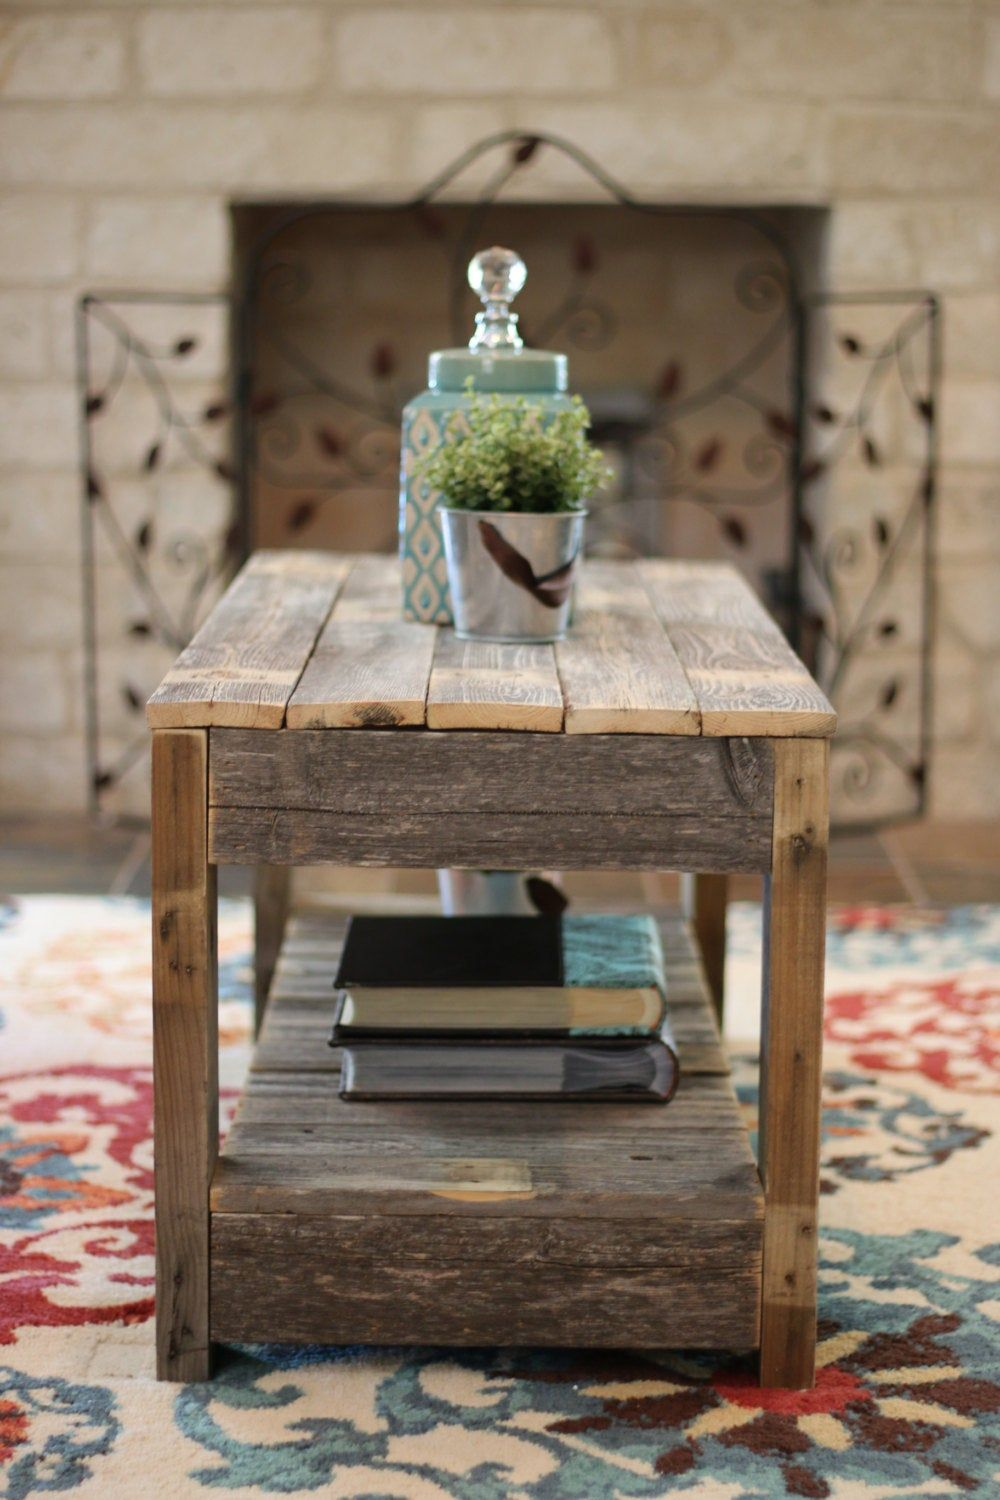 28+ Unfinished solid wood coffee table ideas in 2021